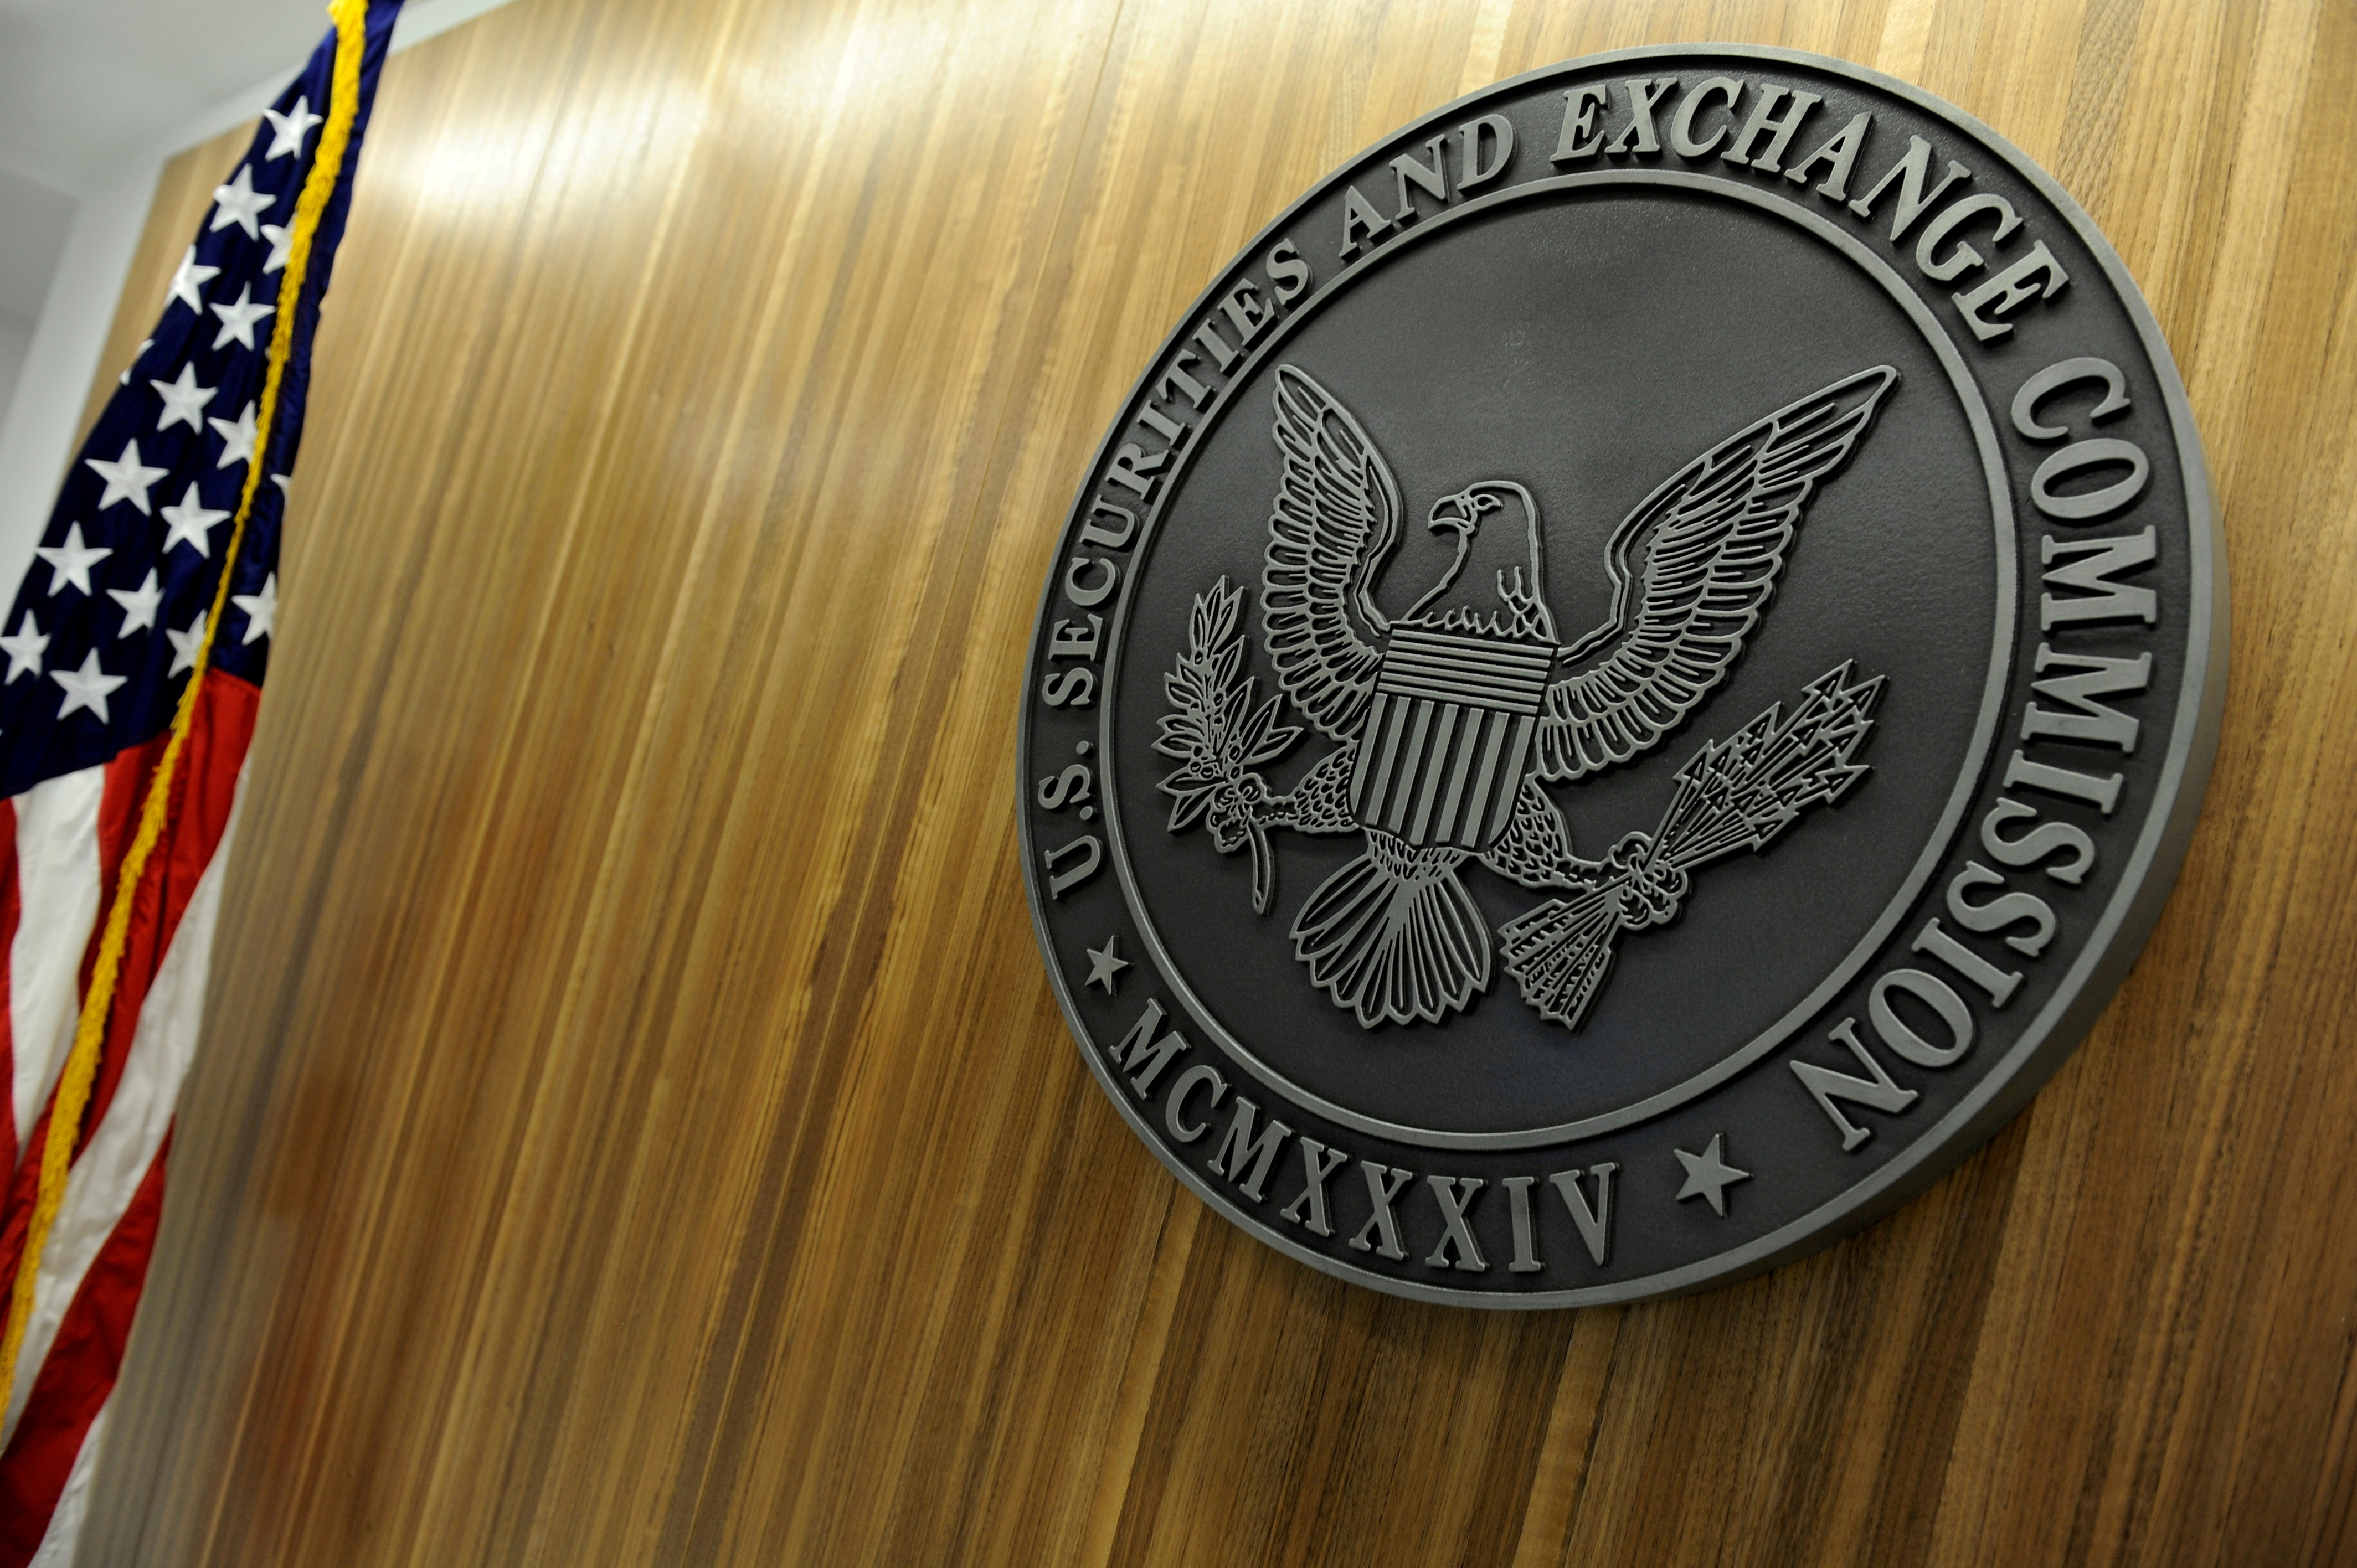 File photo: The seal of the U.S. Securities and Exchange Commission hangs on the wall at SEC headquarters in Washington, June 24, 2011. REUTERS/Jonathan Ernst